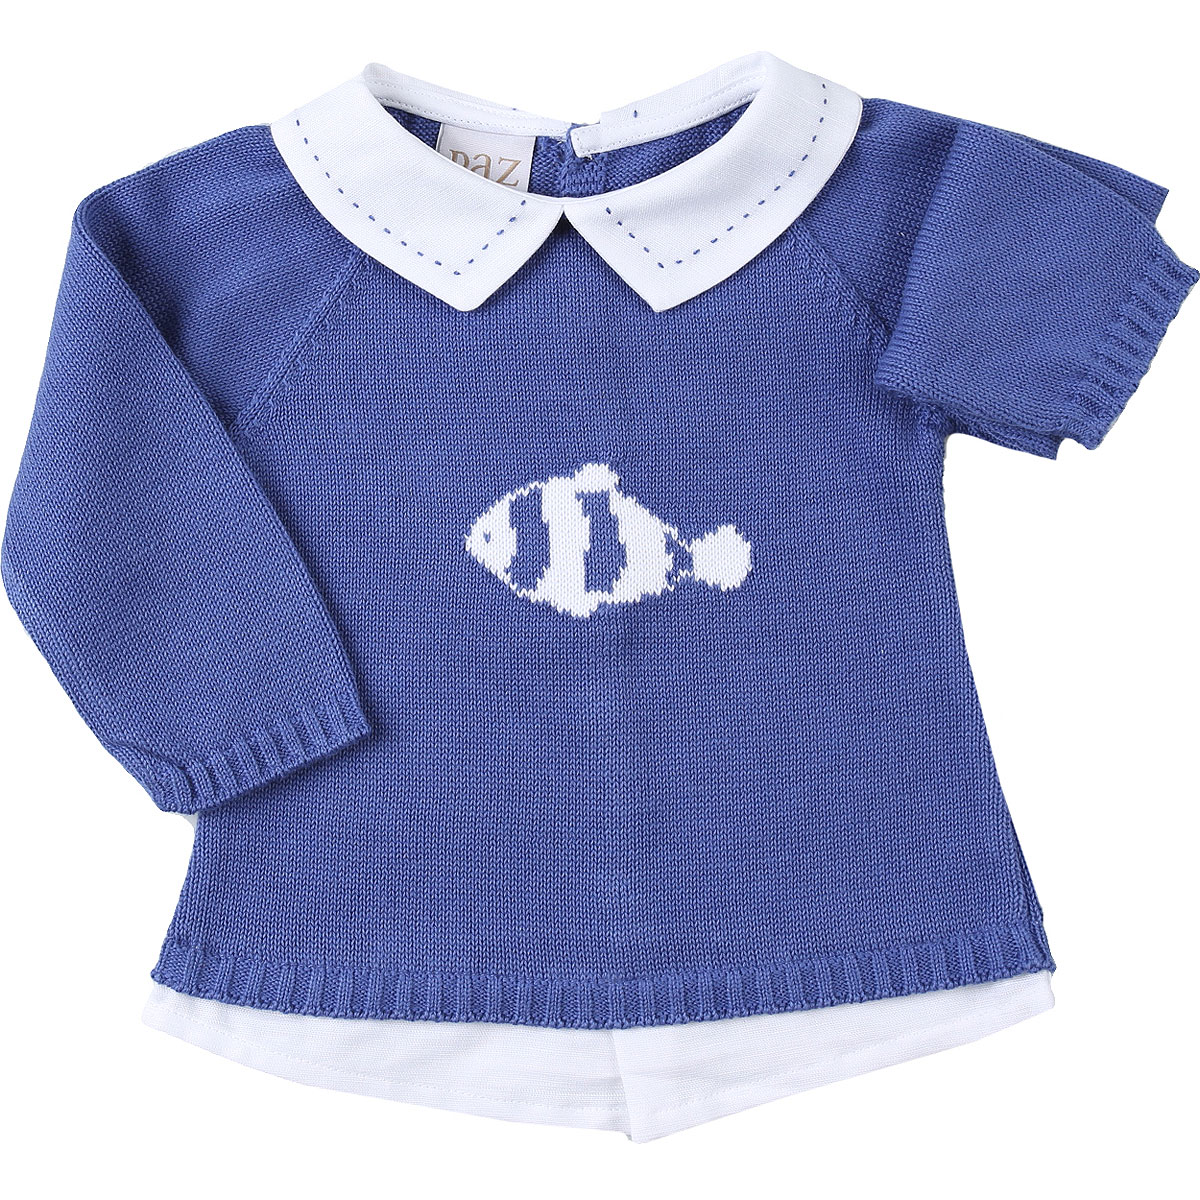 Paz Rodriguez Baby Sweaters for Boys On Sale, Blue, Cotton, 2019, 3M 9M